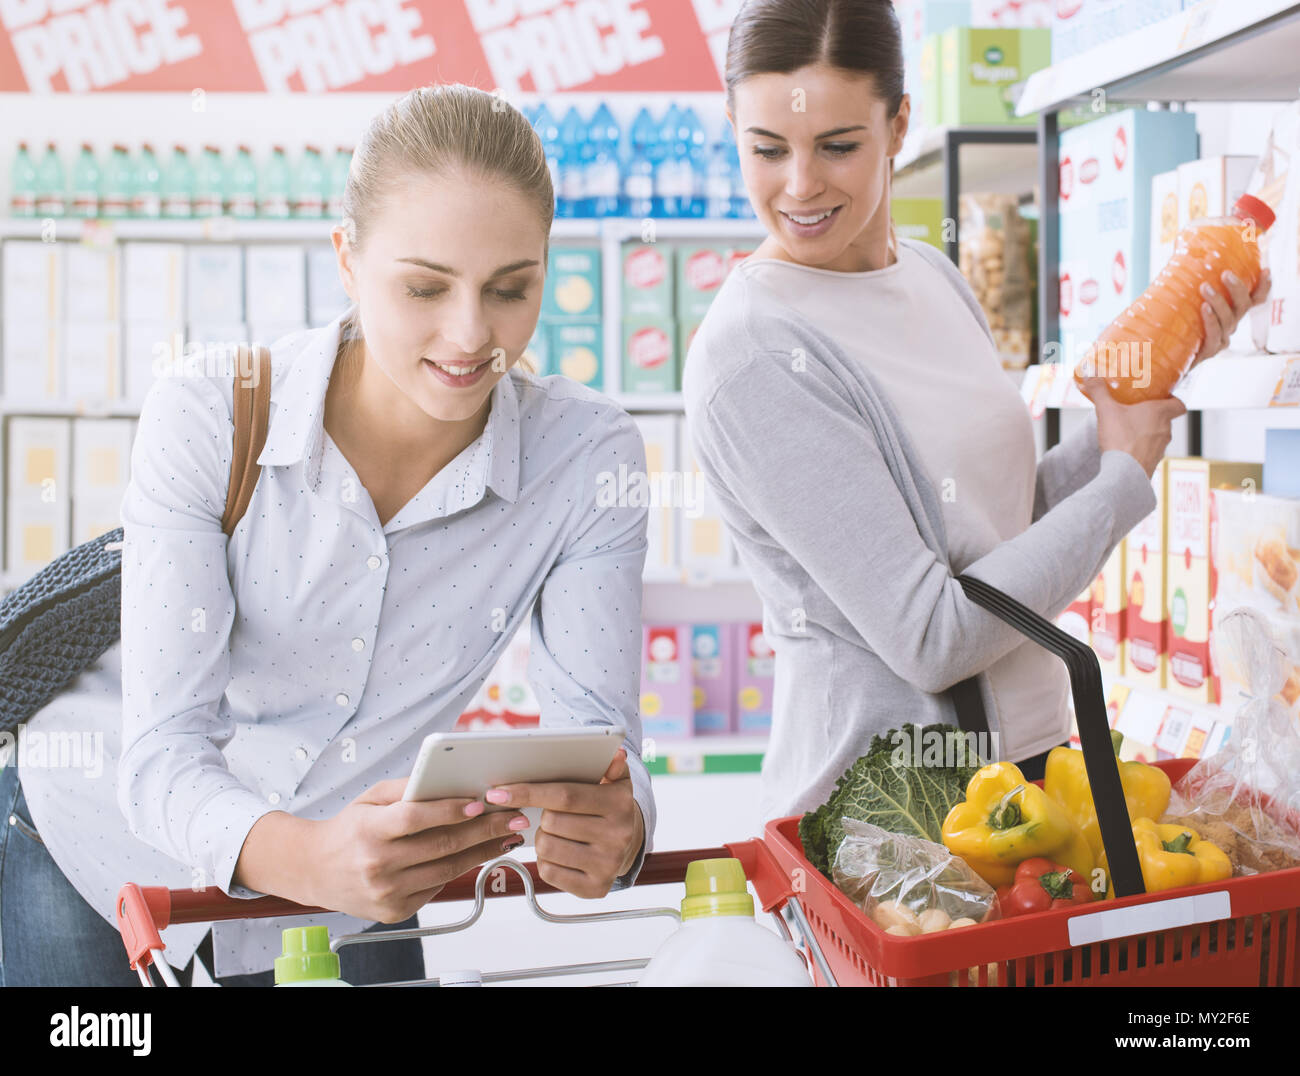 Happy female friends shopping together at the supermarket, they are connecting with a digital tablet, searching products and offers - Stock Image